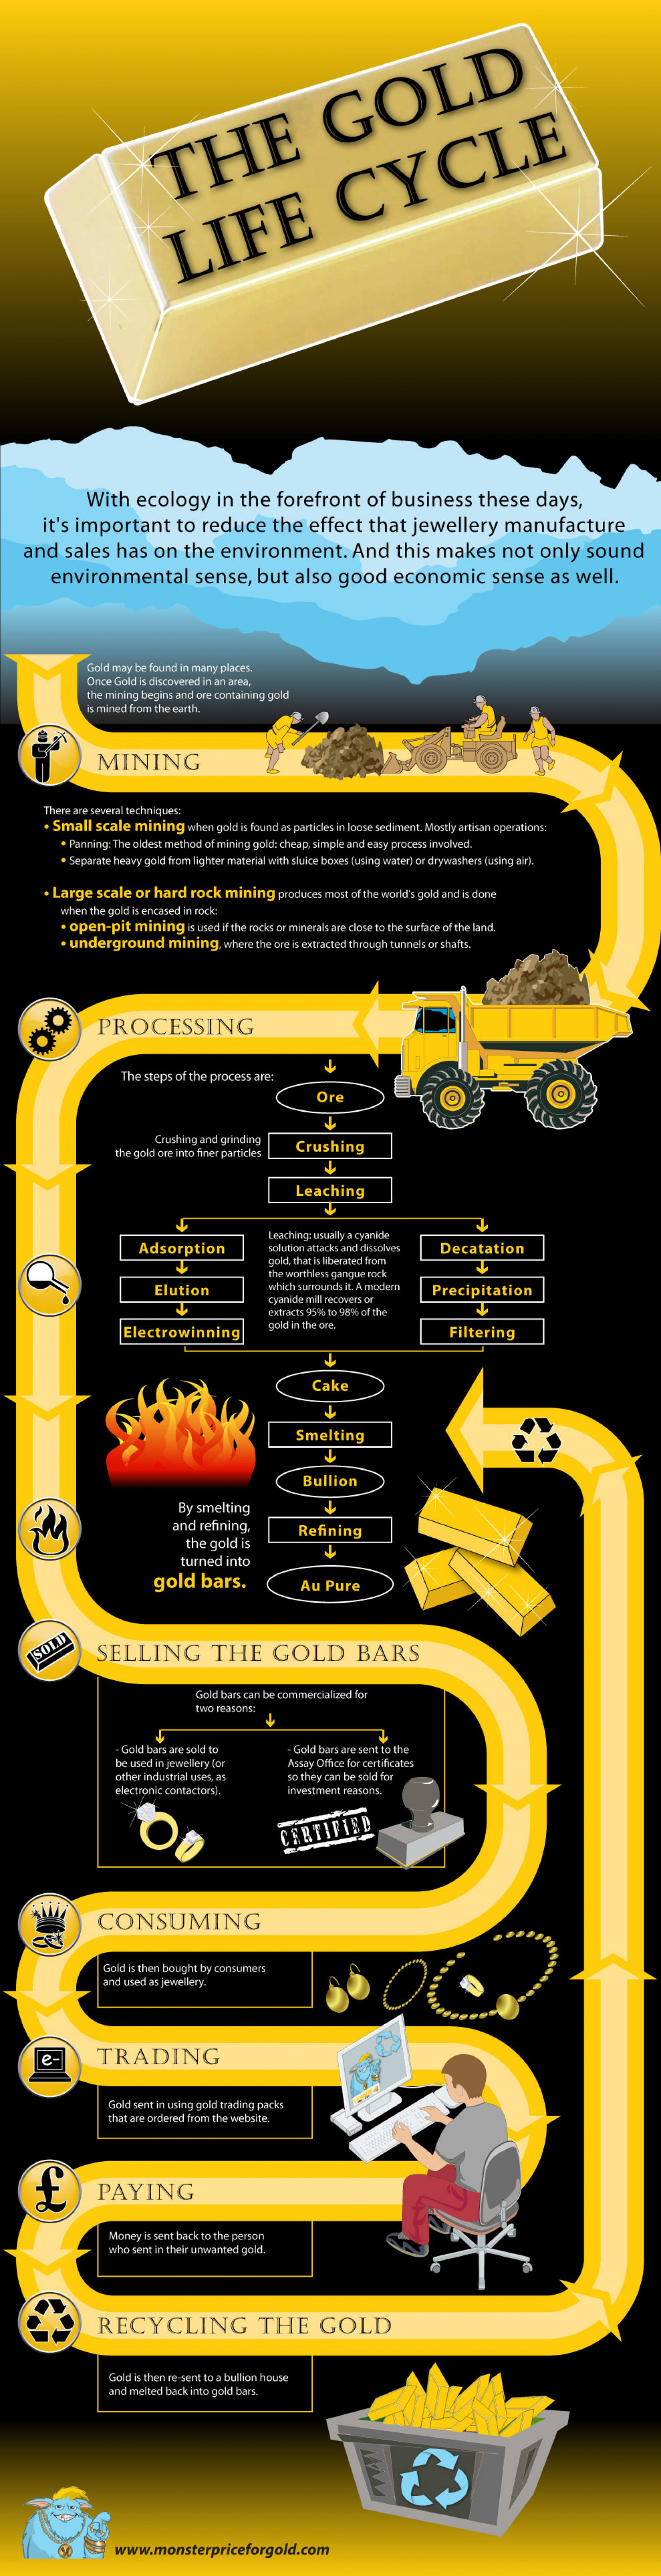 The Gold Life Cycle Infographic